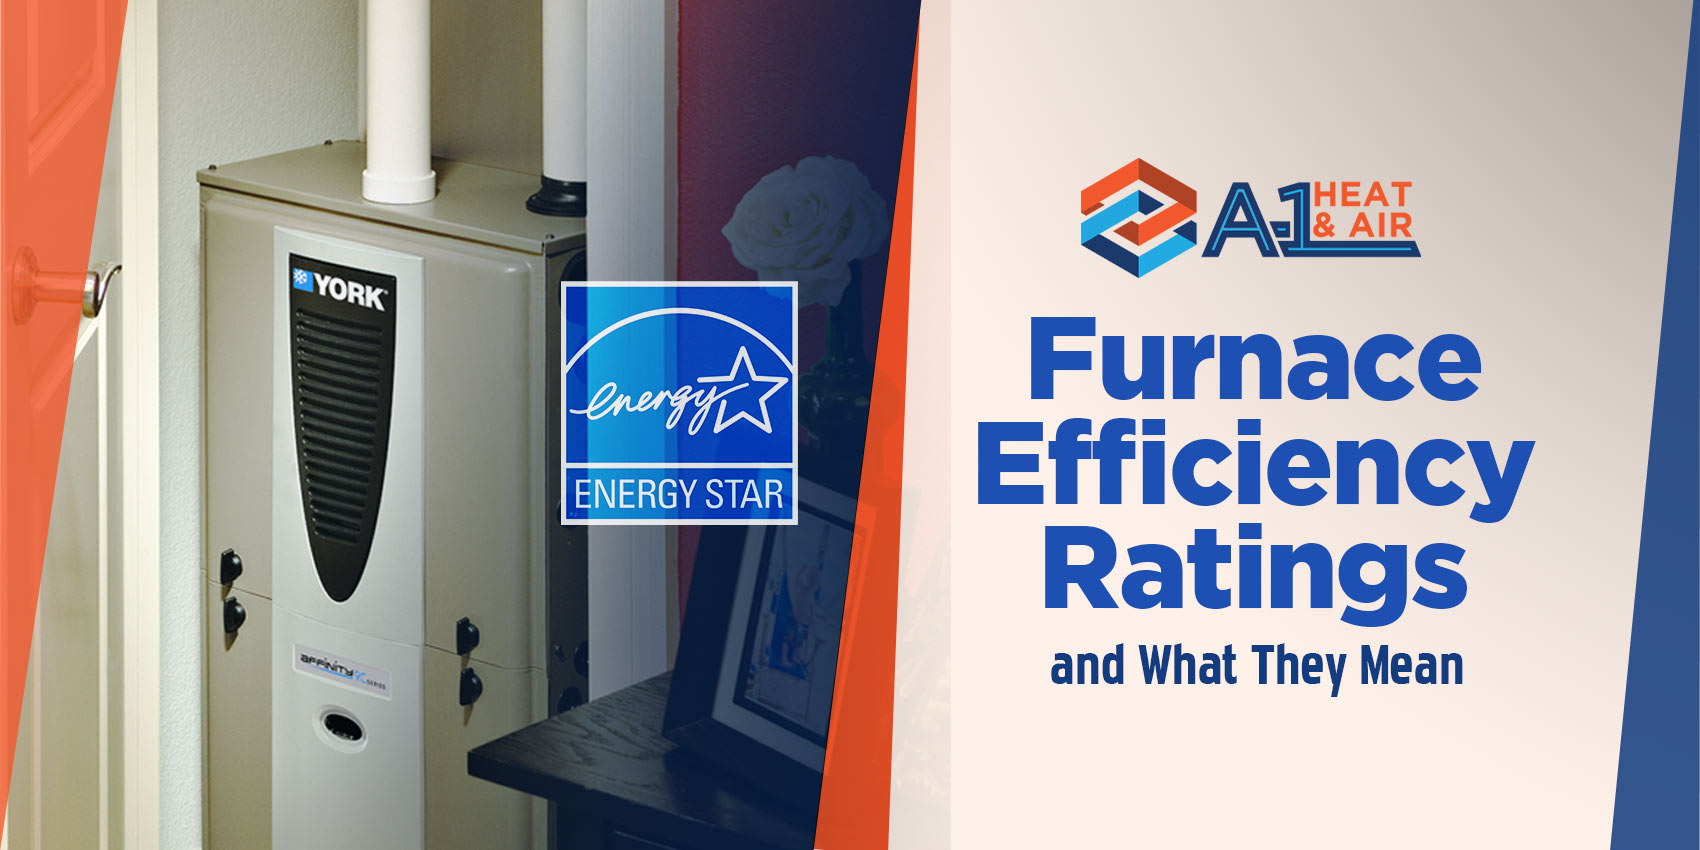 Furnace Efficiency Ratings and What They Mean